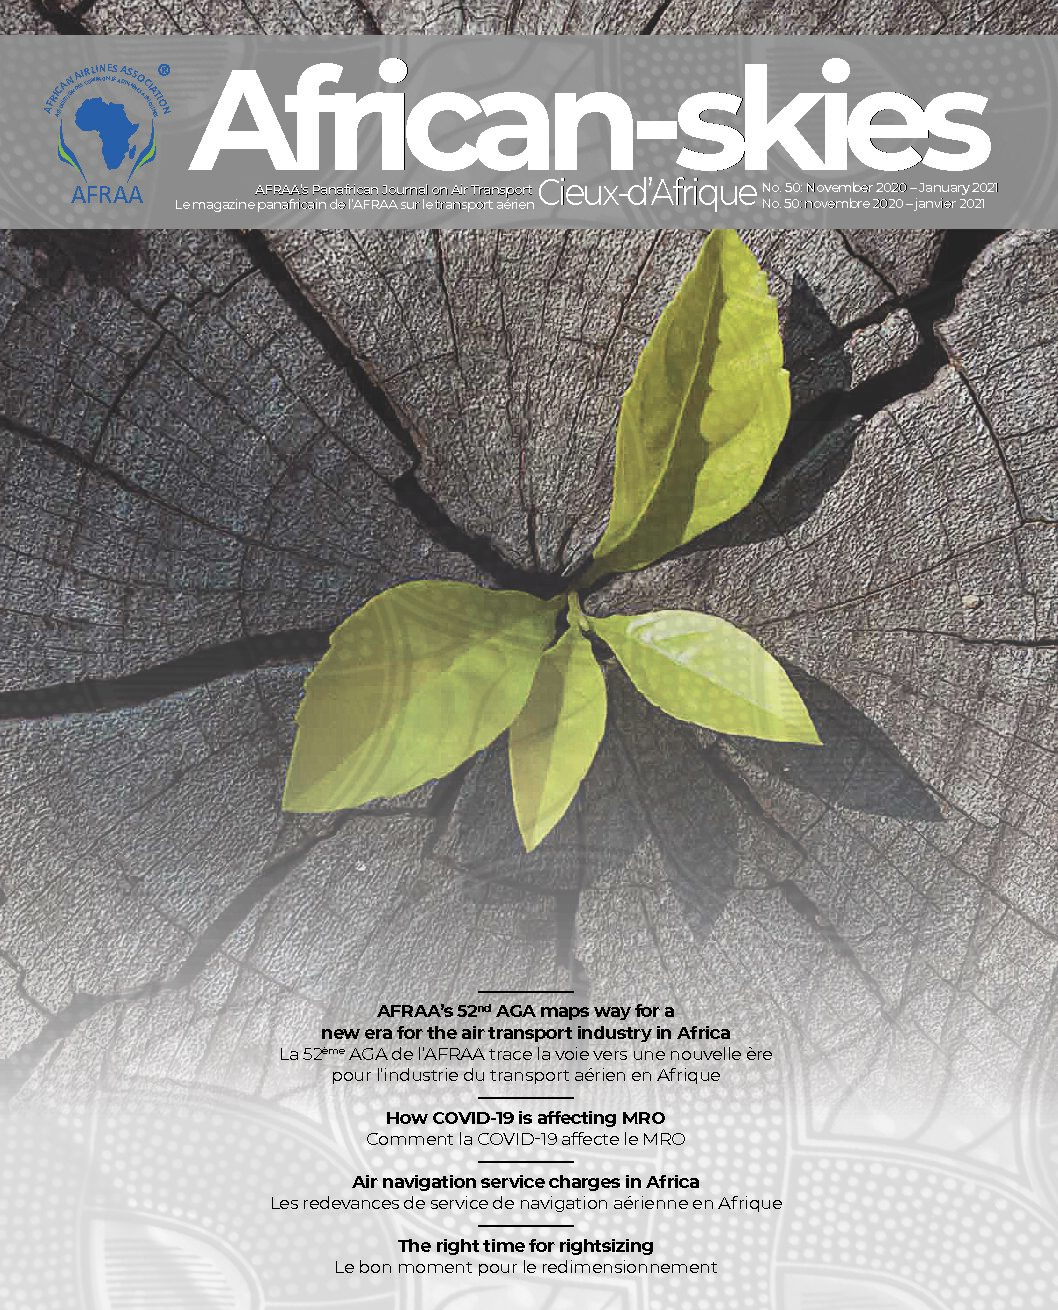 African Skies Issue No. 50